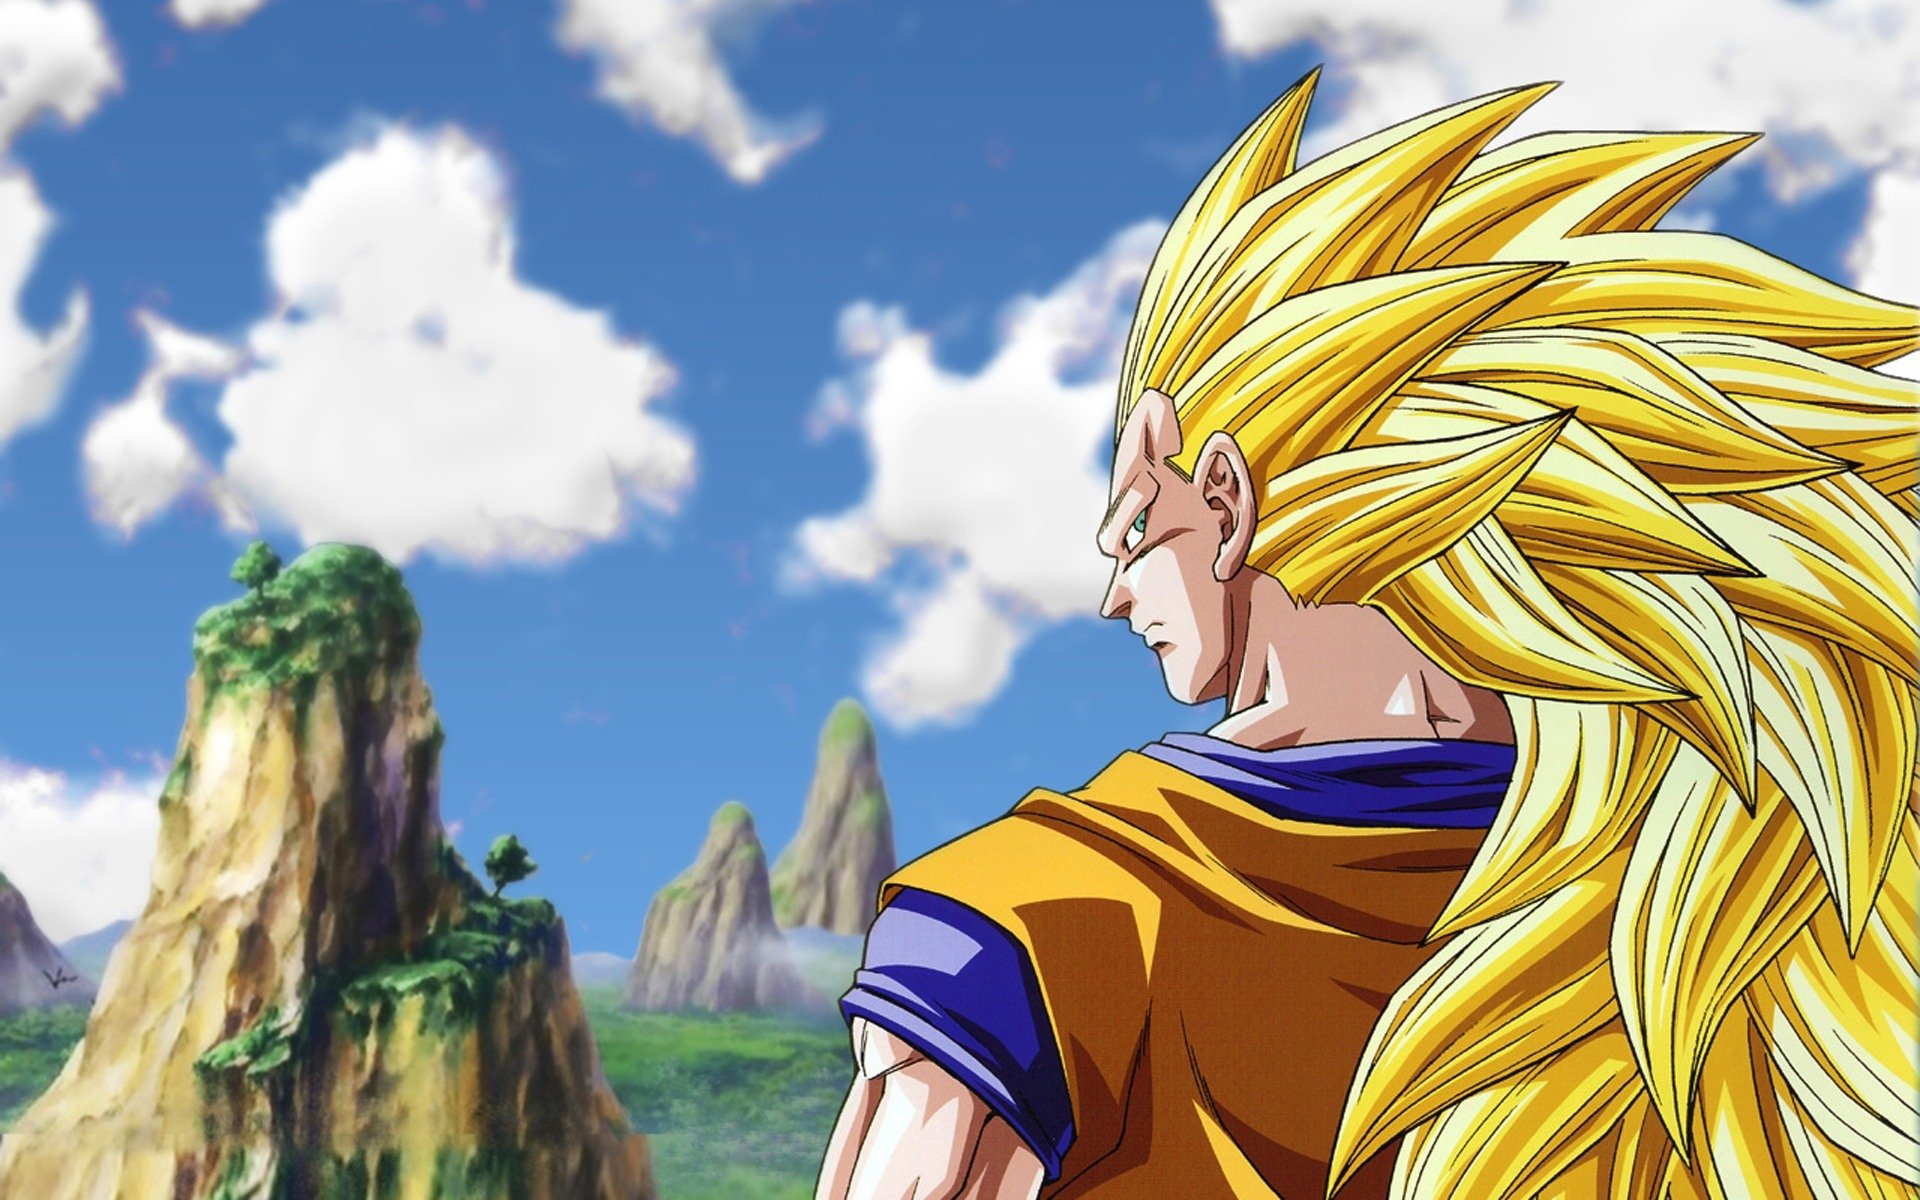 Anime - Dragon Ball Z  Goku Wallpaper